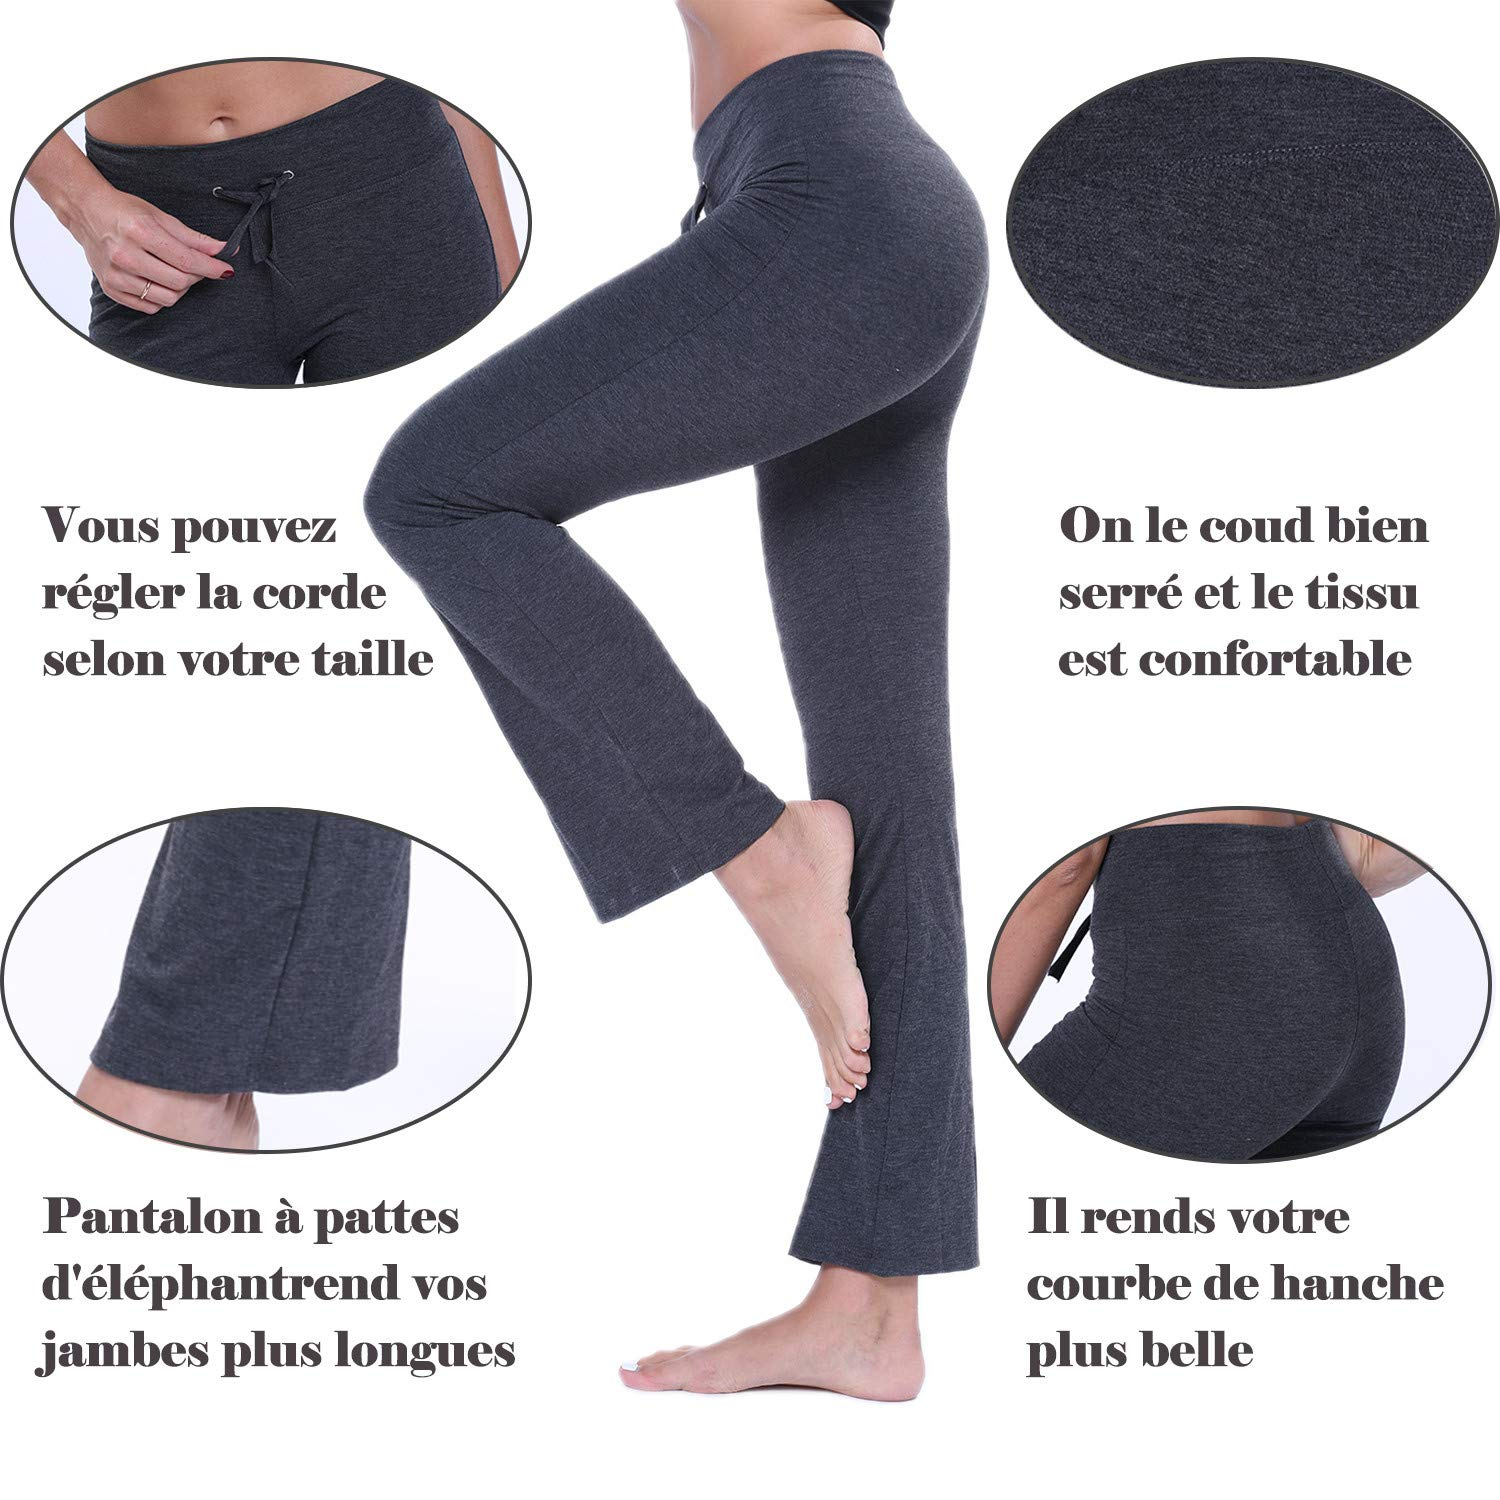 Femme Pour Pour Pantalon Pour Yoga Fittoo Pantalon Yoga Fittoo Femme Pantalon Yoga Fittoo OwP0nk